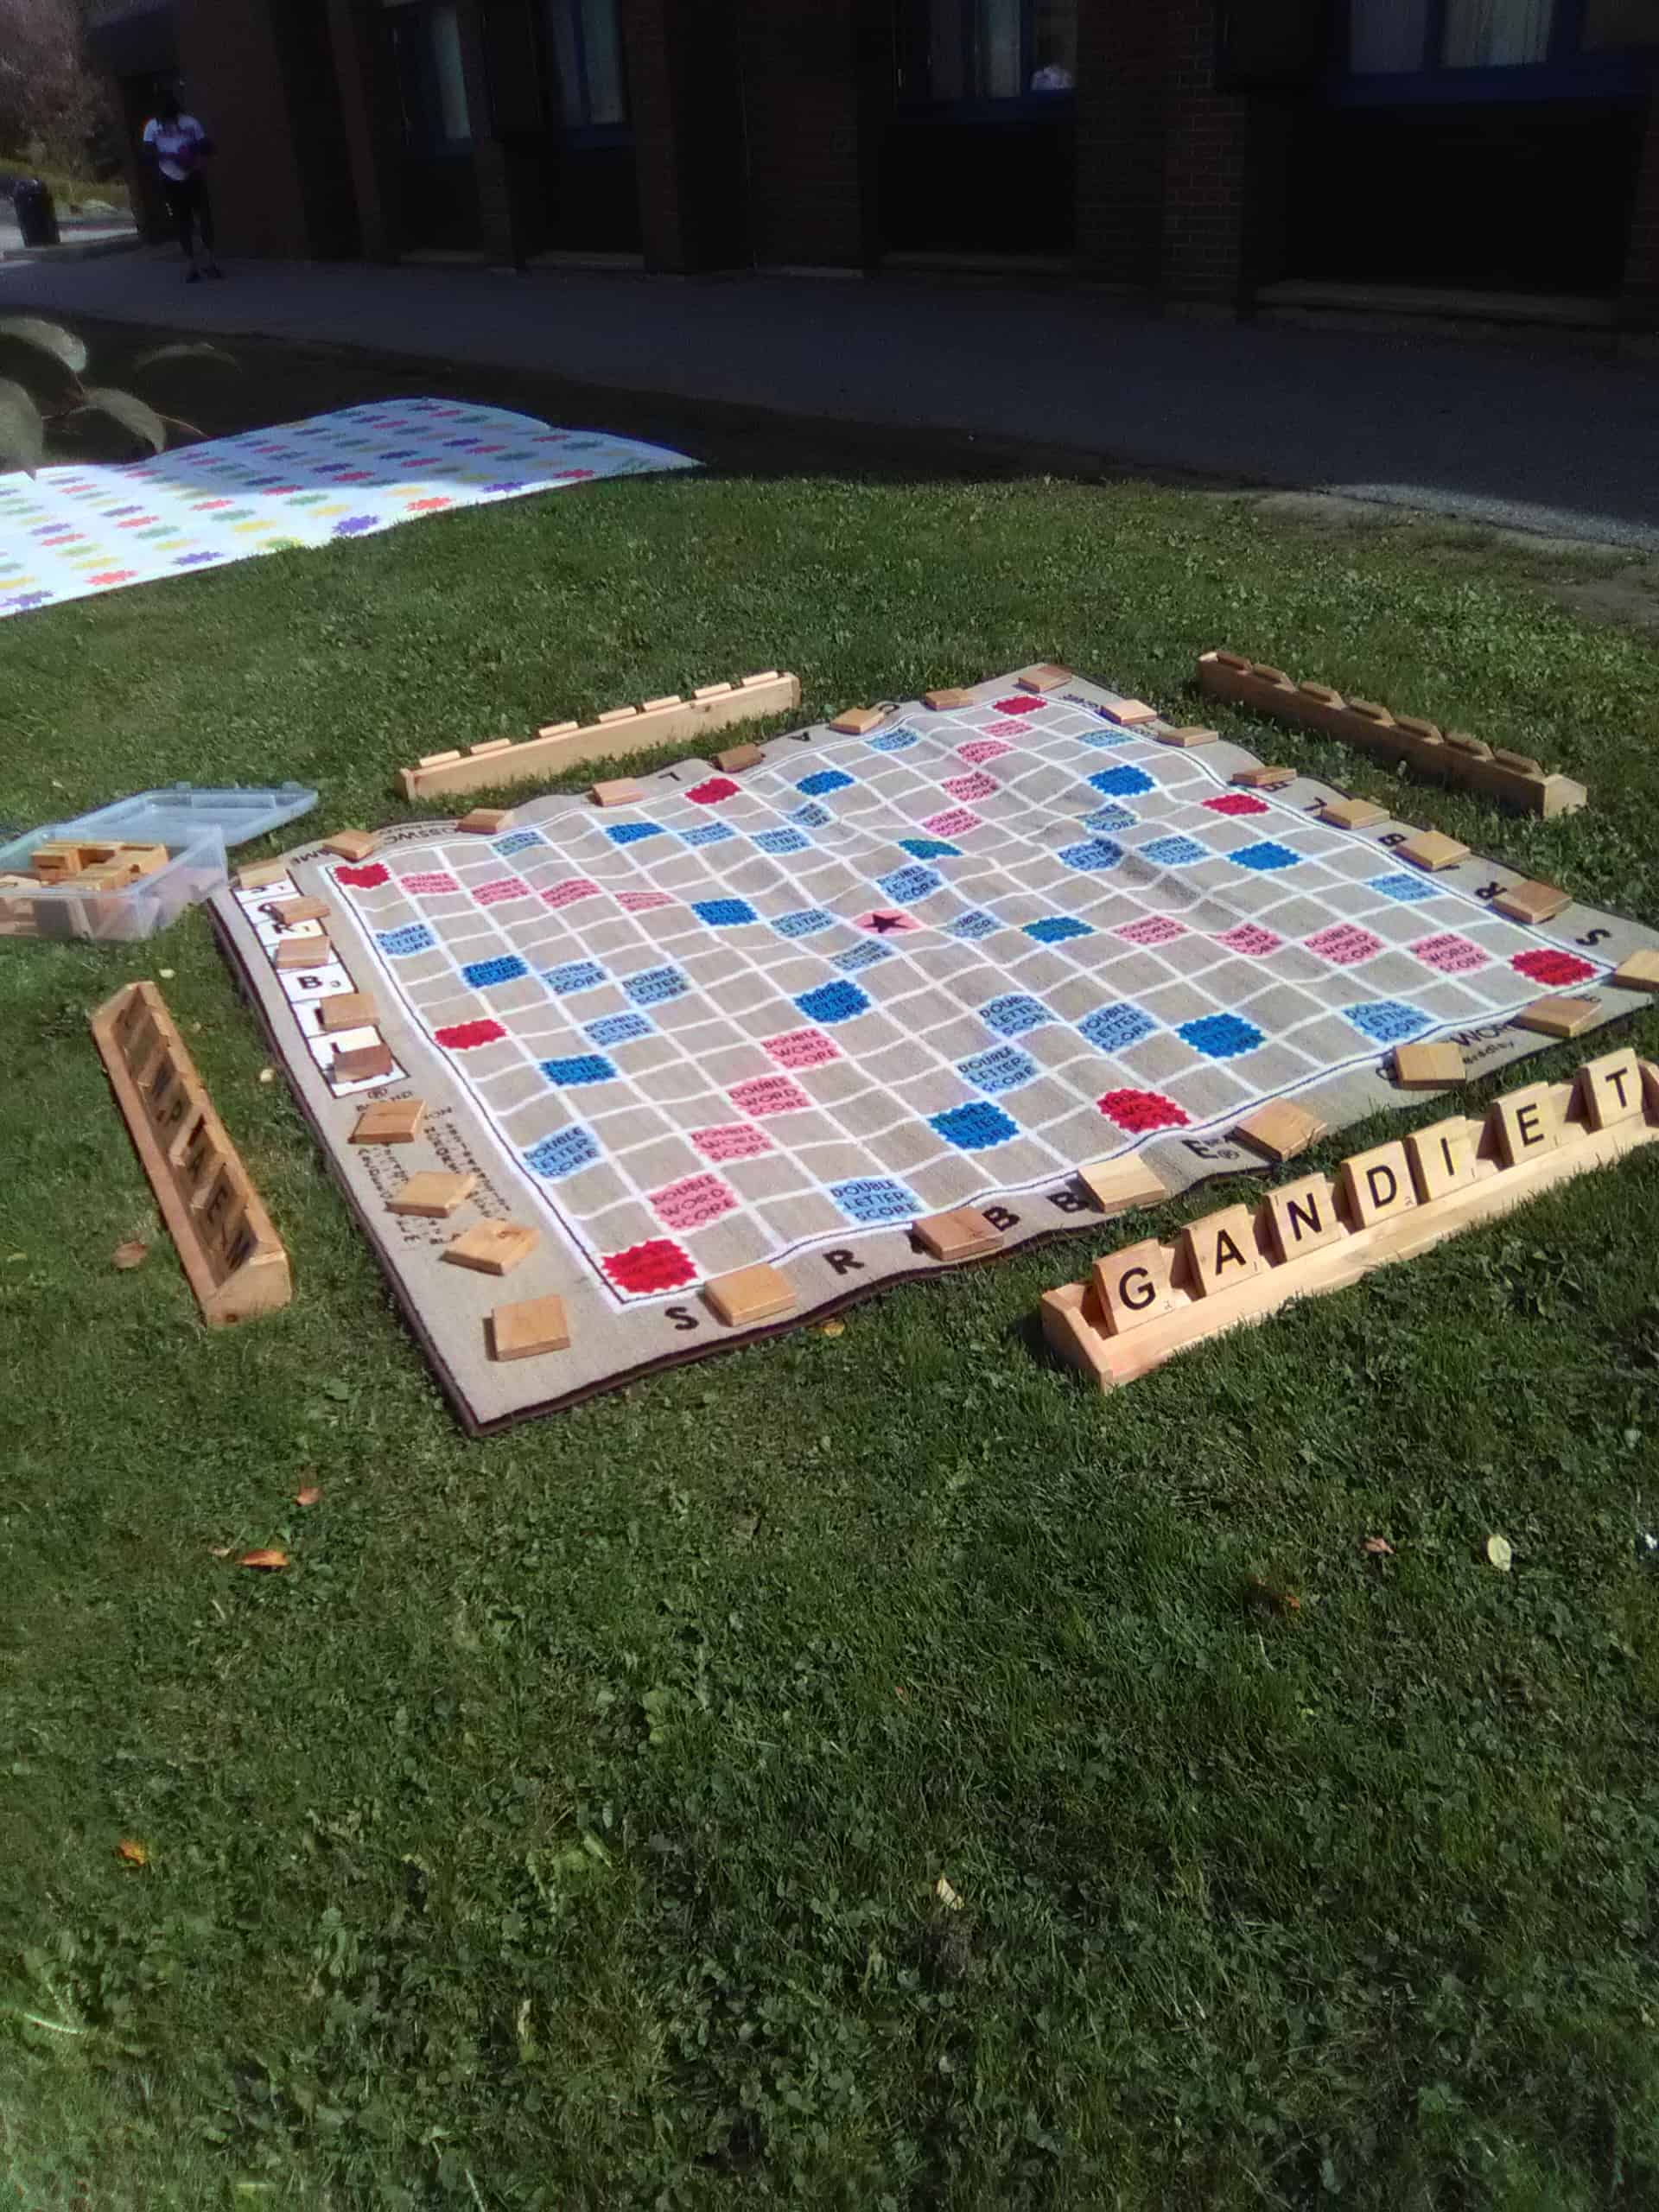 Giant backyard Scrabble